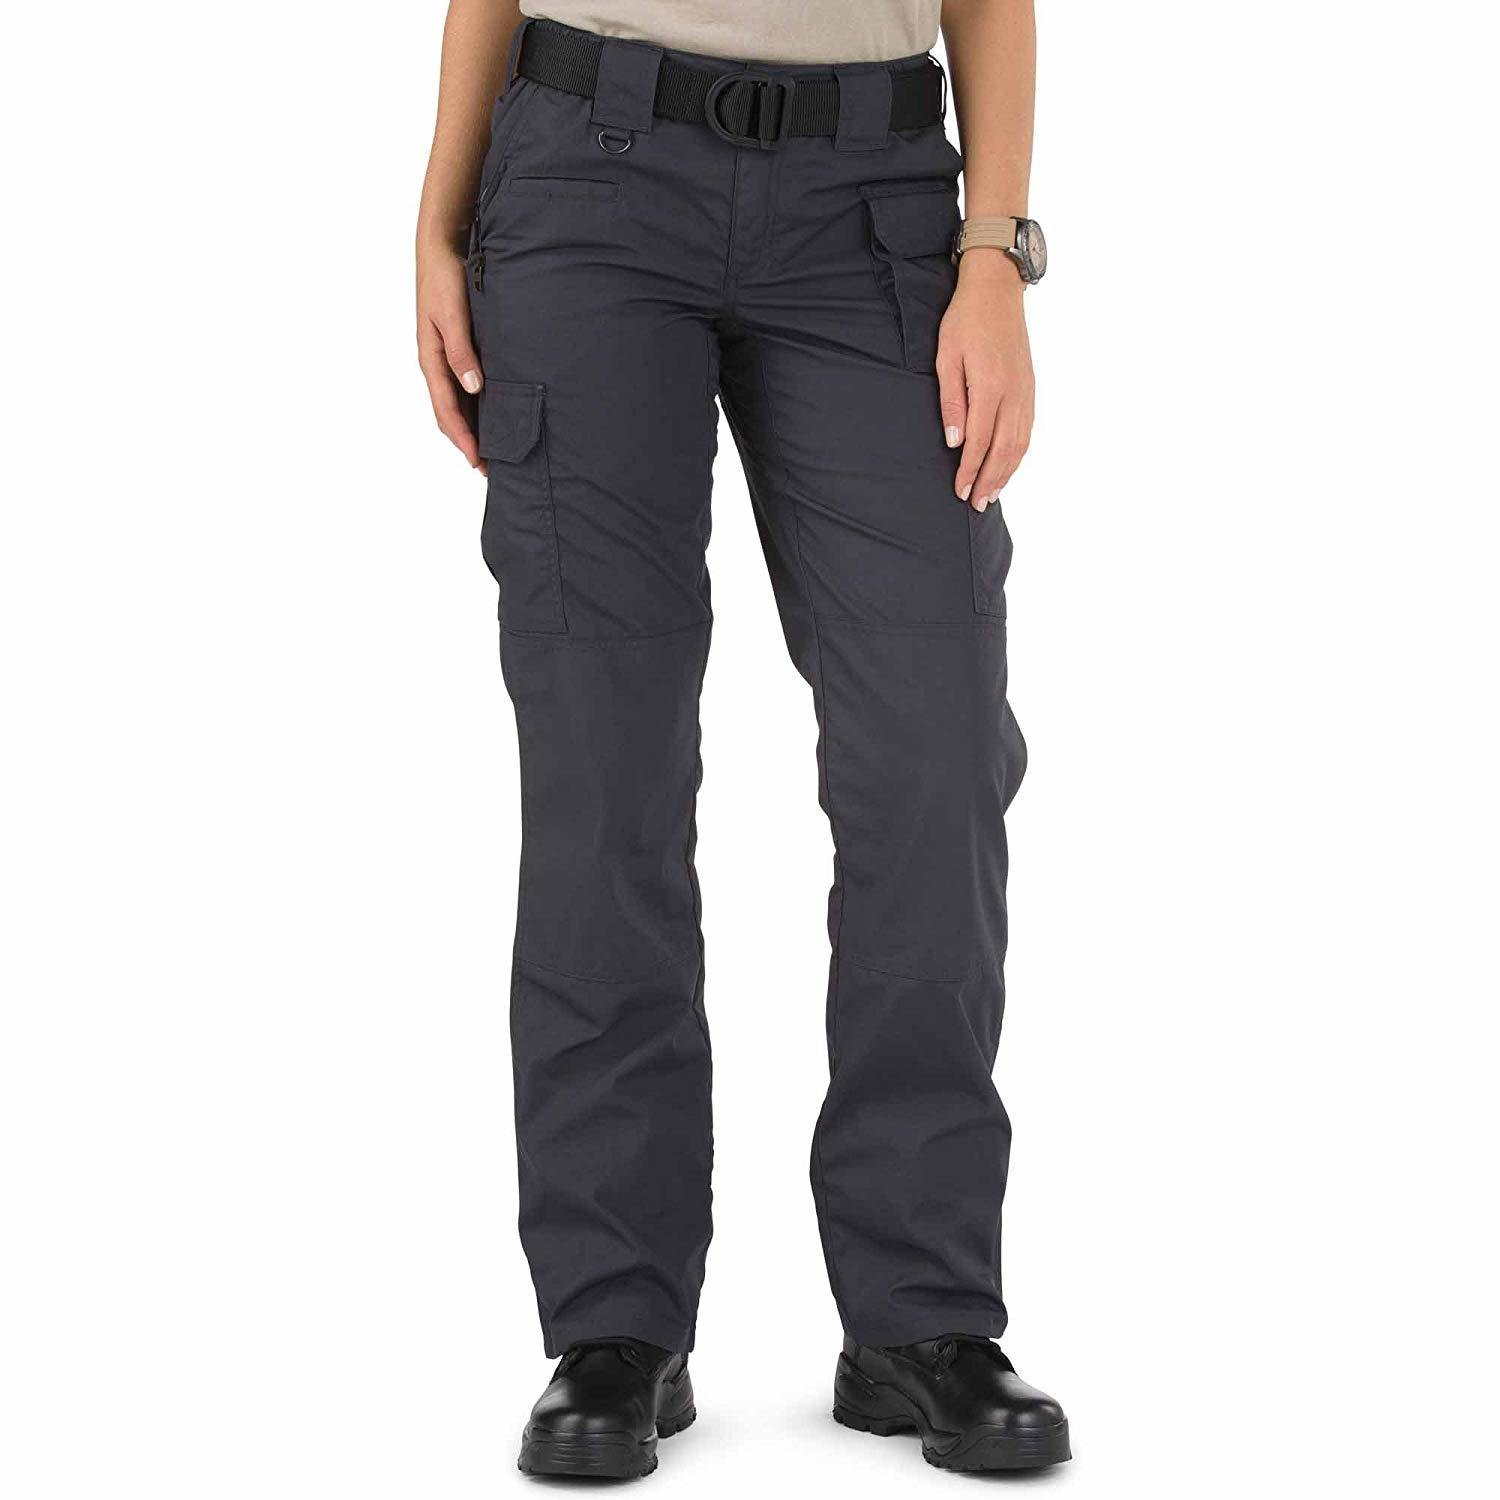 5.11 Women's TACLITE PRO Tactical Pants, Style 64360 - Charcoal or Black